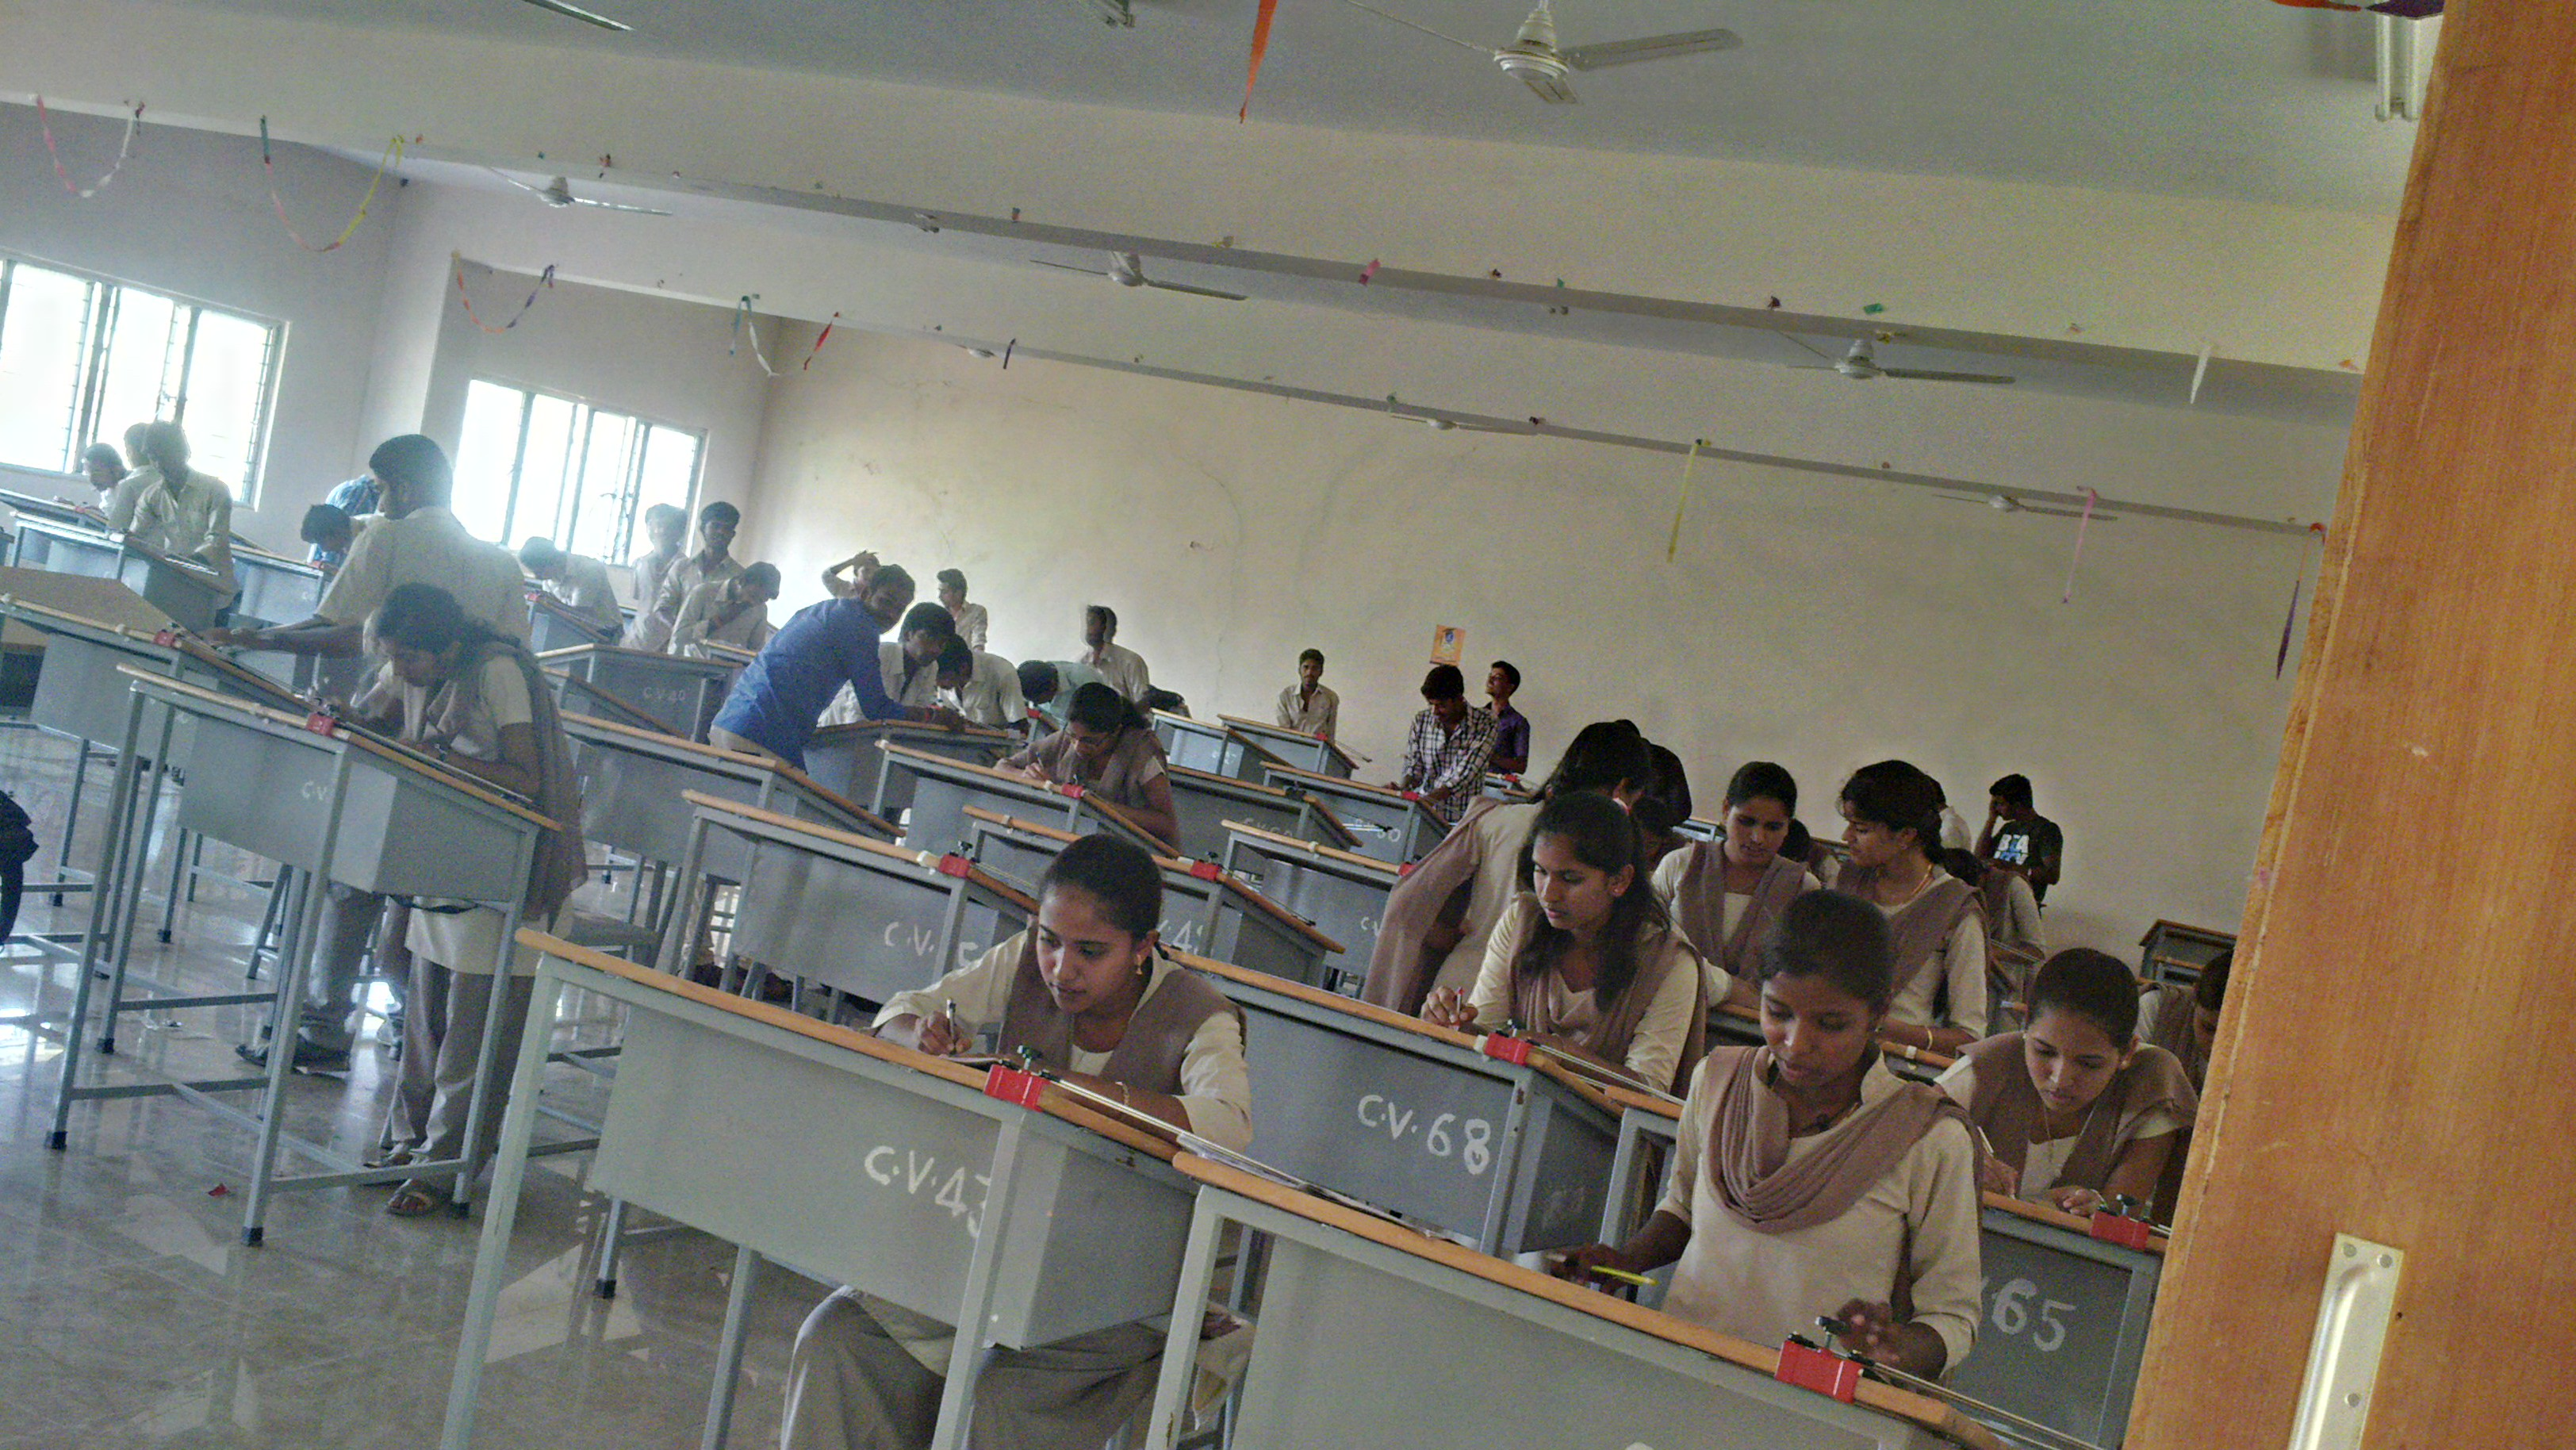 Best Mechanical Engineering Colleges >> Government Engineering College, Chamarajanagar - 2019 Admission, Fees, Placements, Reviews/Rankings